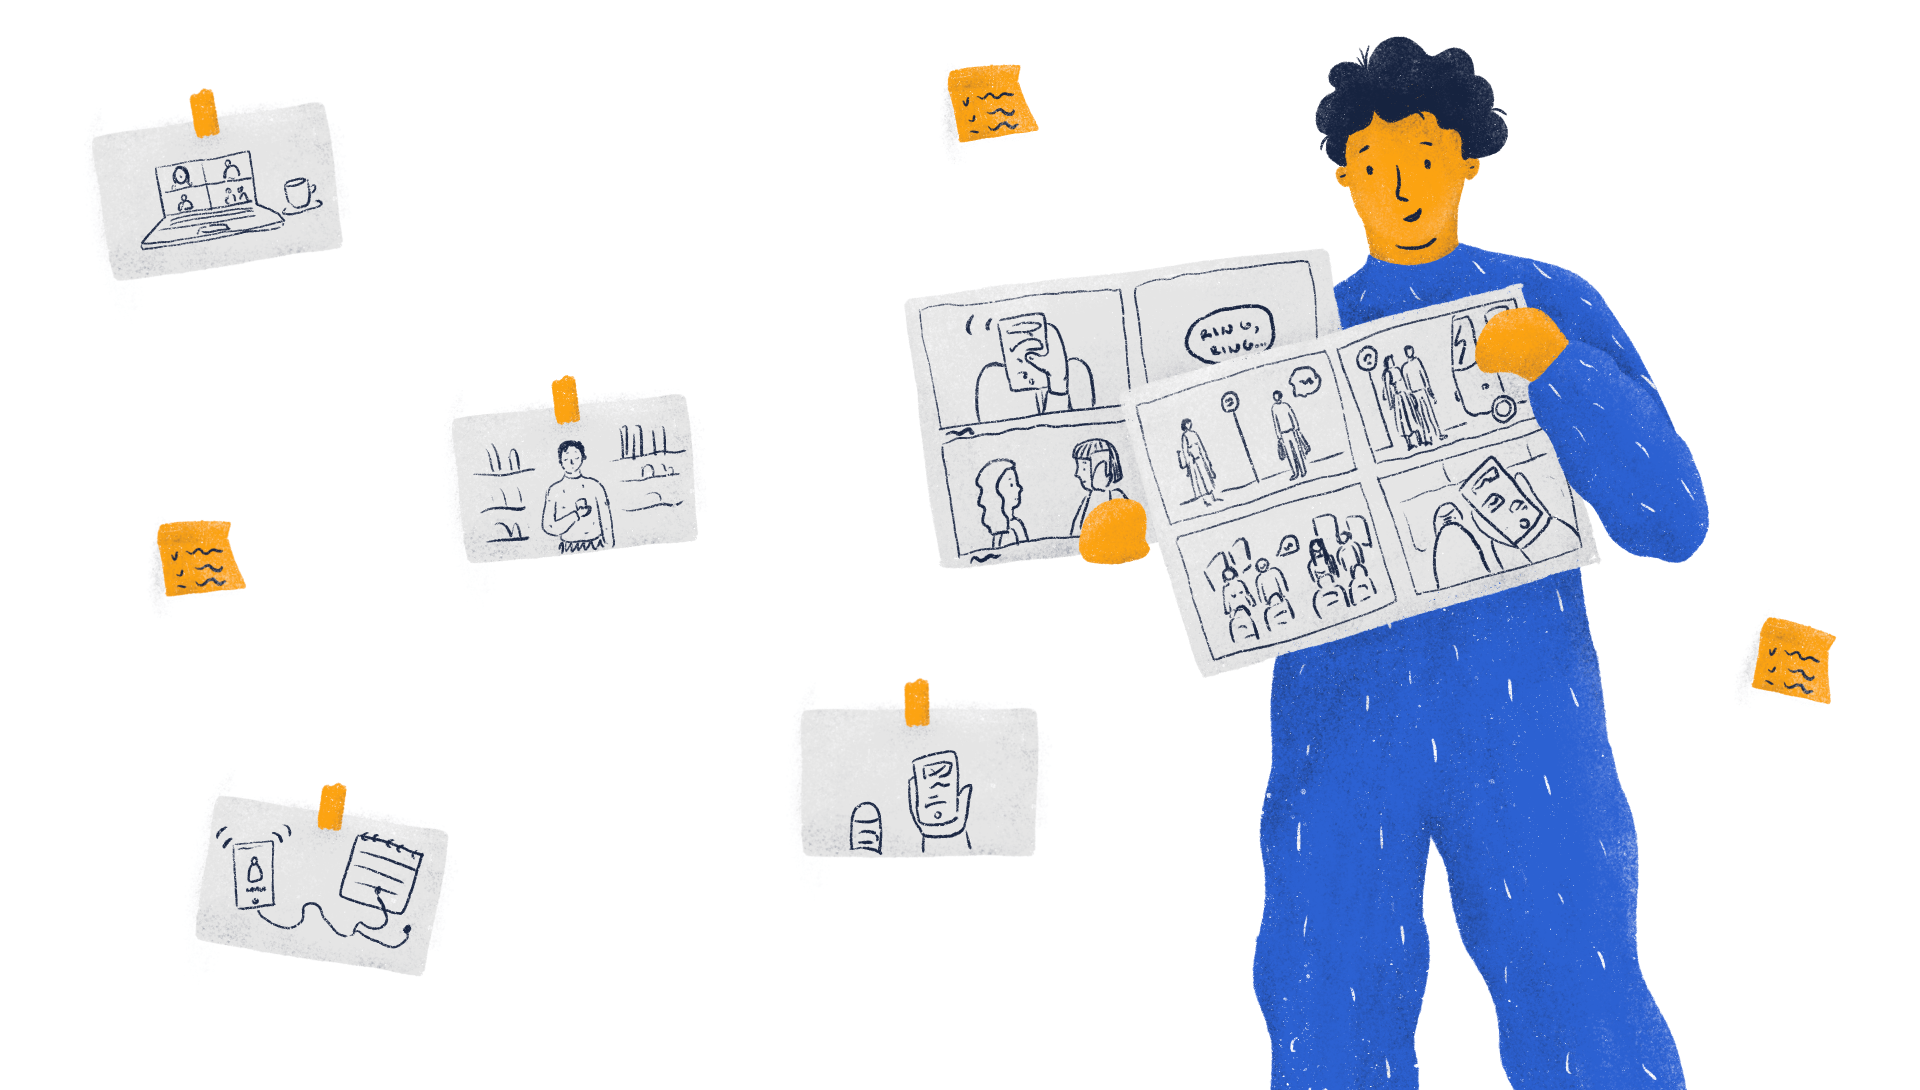 Storyboarding: Communicating UX Insights in a Humane Way